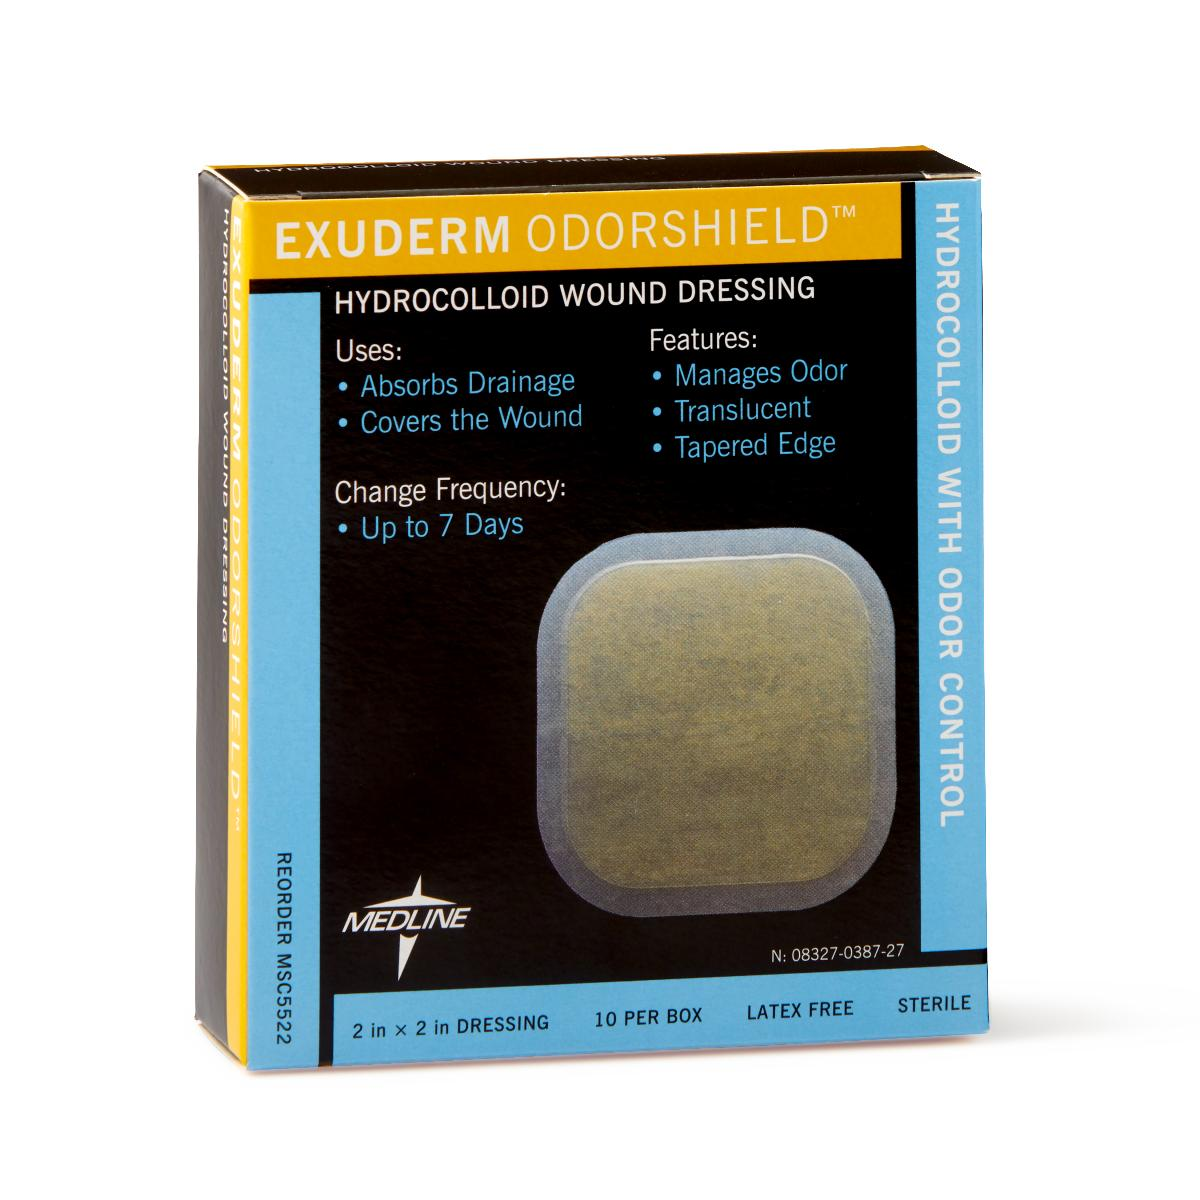 "Exuderm Odorshield Hydrocolloid Wound Dressing 2"" x 2"" - Medical Supply Surplus"